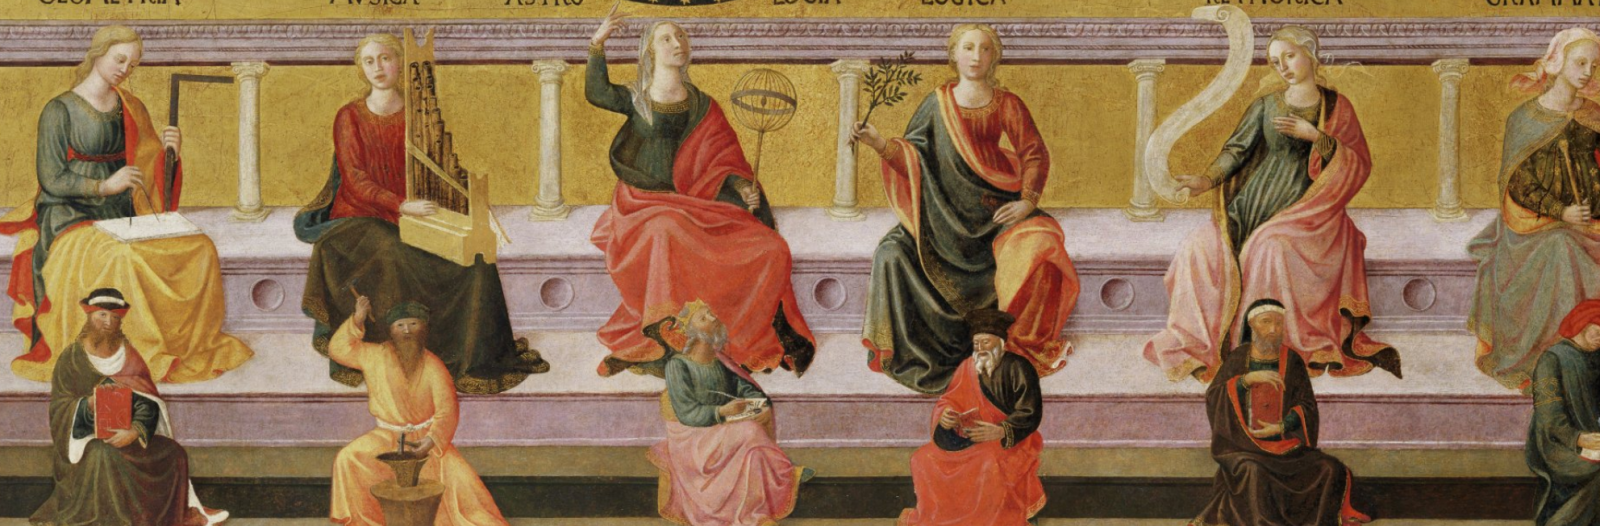 Seven Liberal Arts painting by Michelino, c. 1460